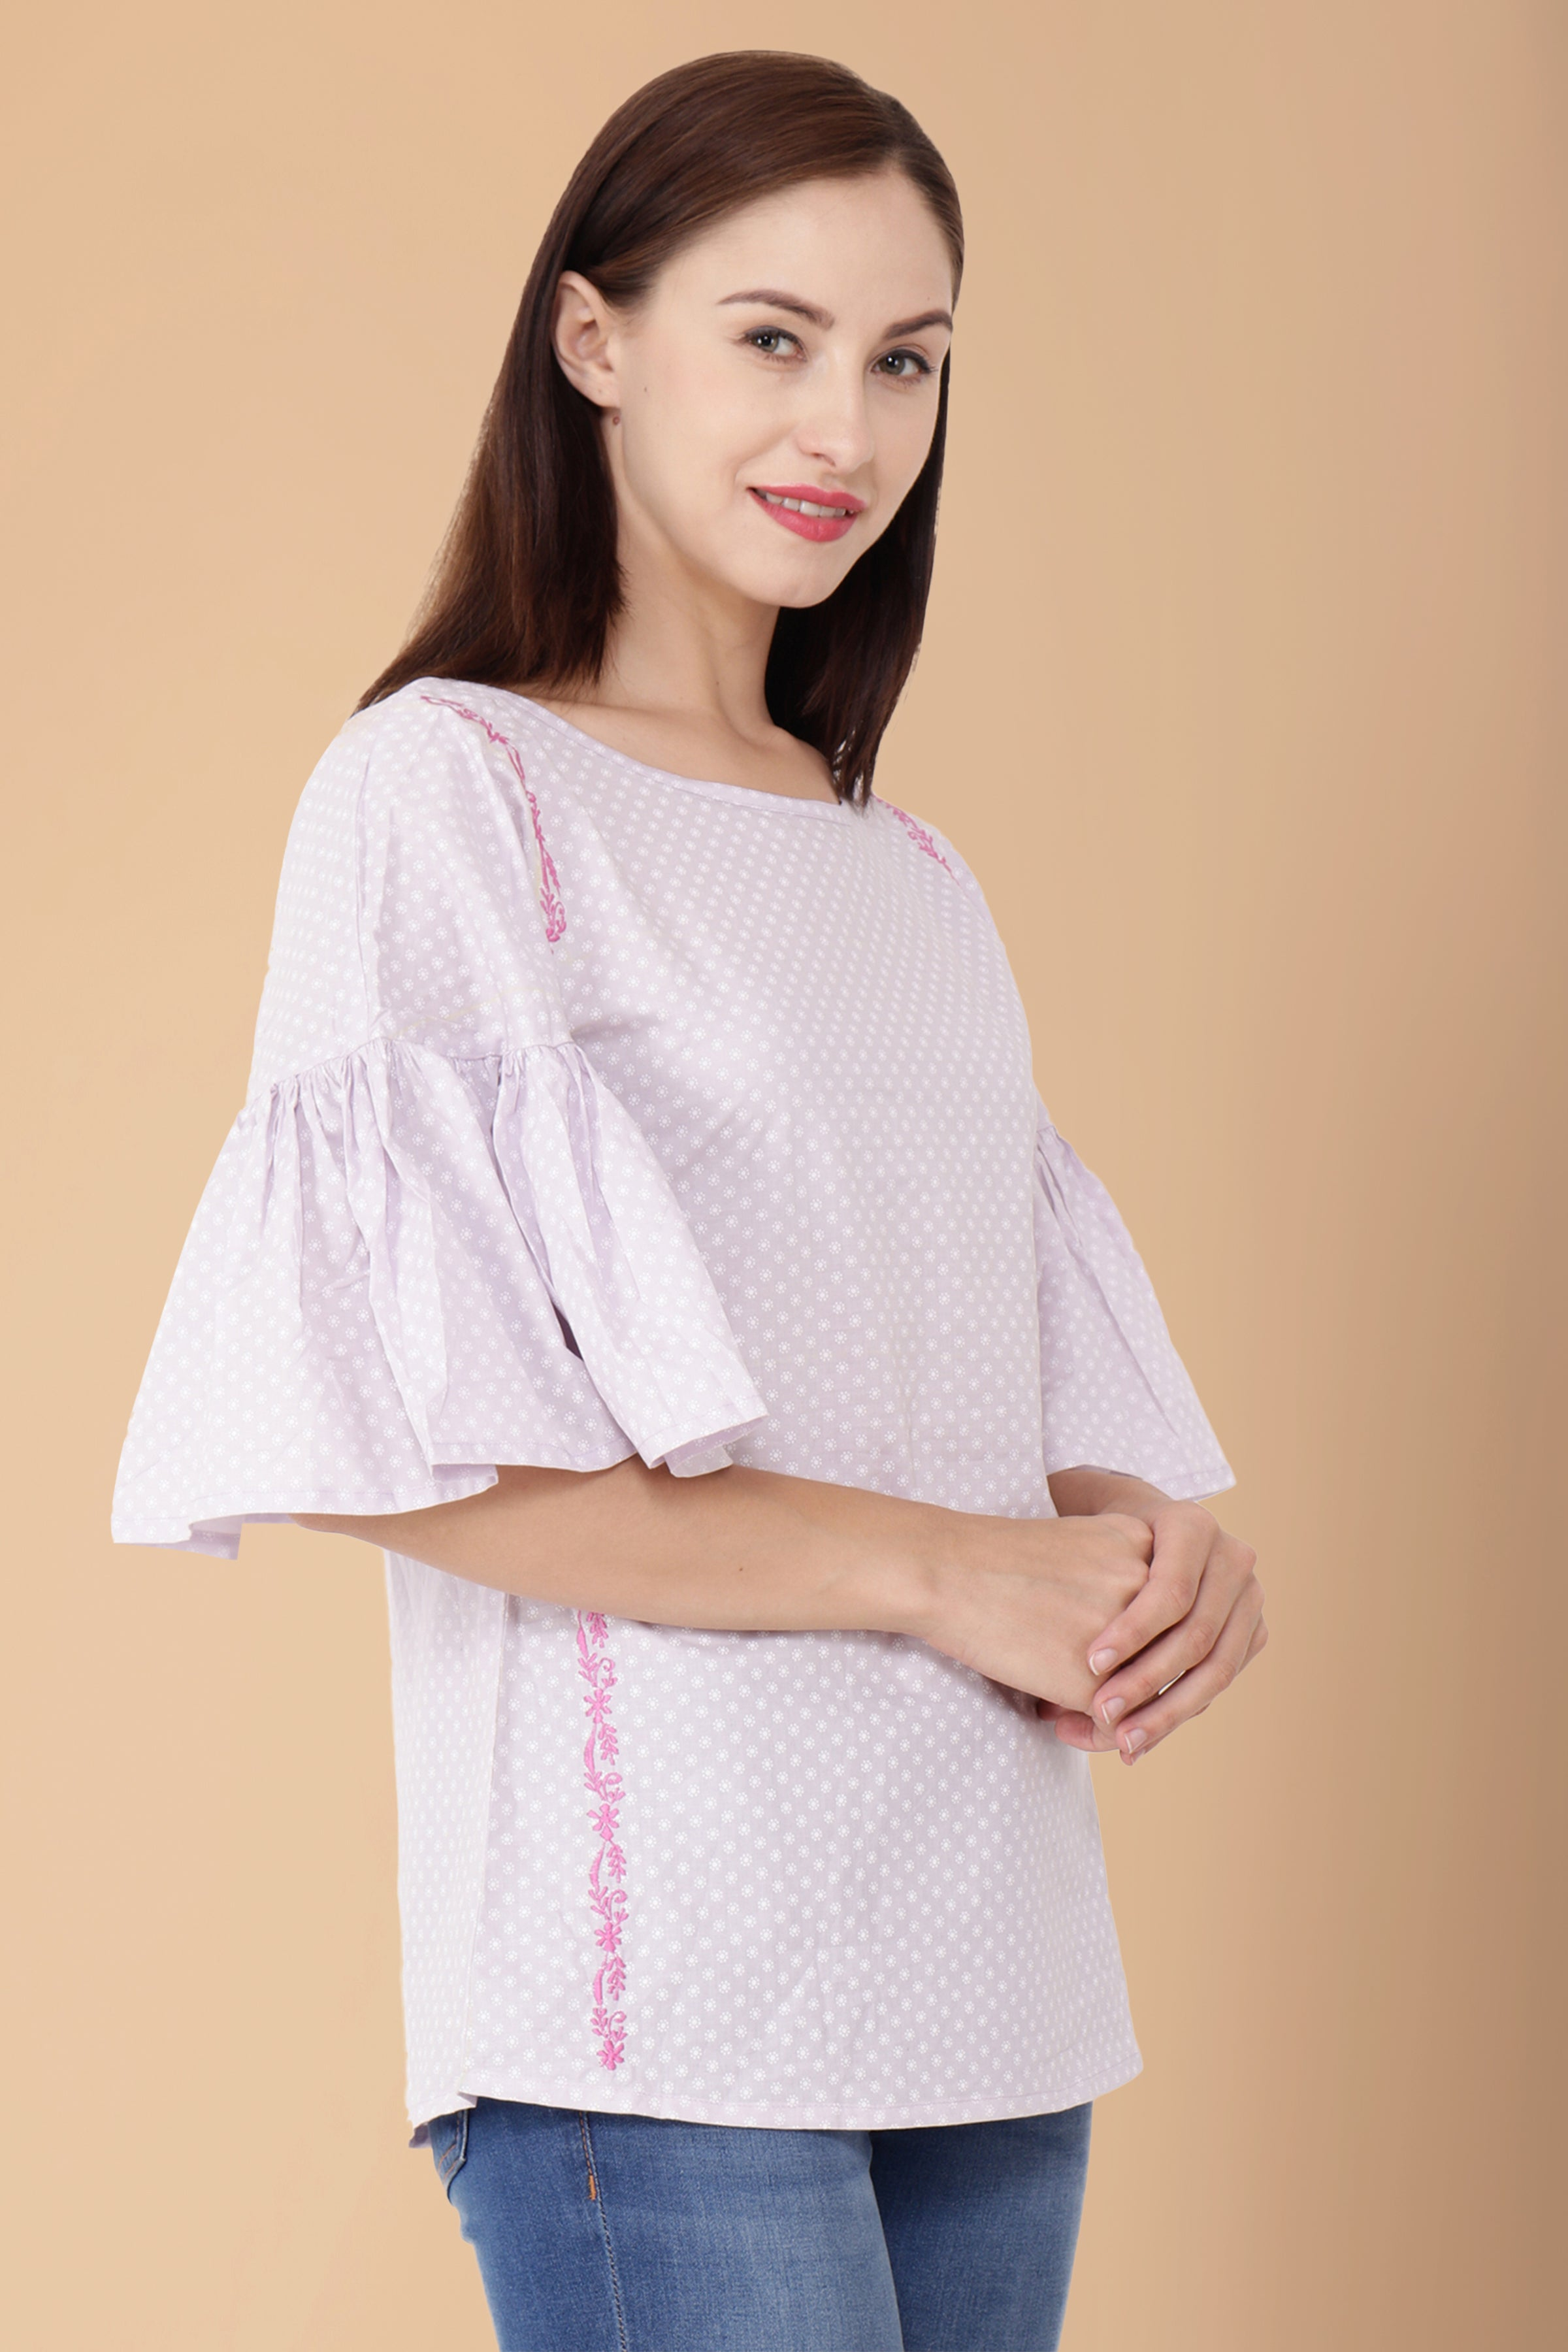 all sizes top and tunics, apella tops and tunics, BELL SLEEVES, BLACK, cotton tops and tunics, designer tops and tunics, EMBROIDERY, plus size top and tunics, RAYON, rayon top and tunics, TOP